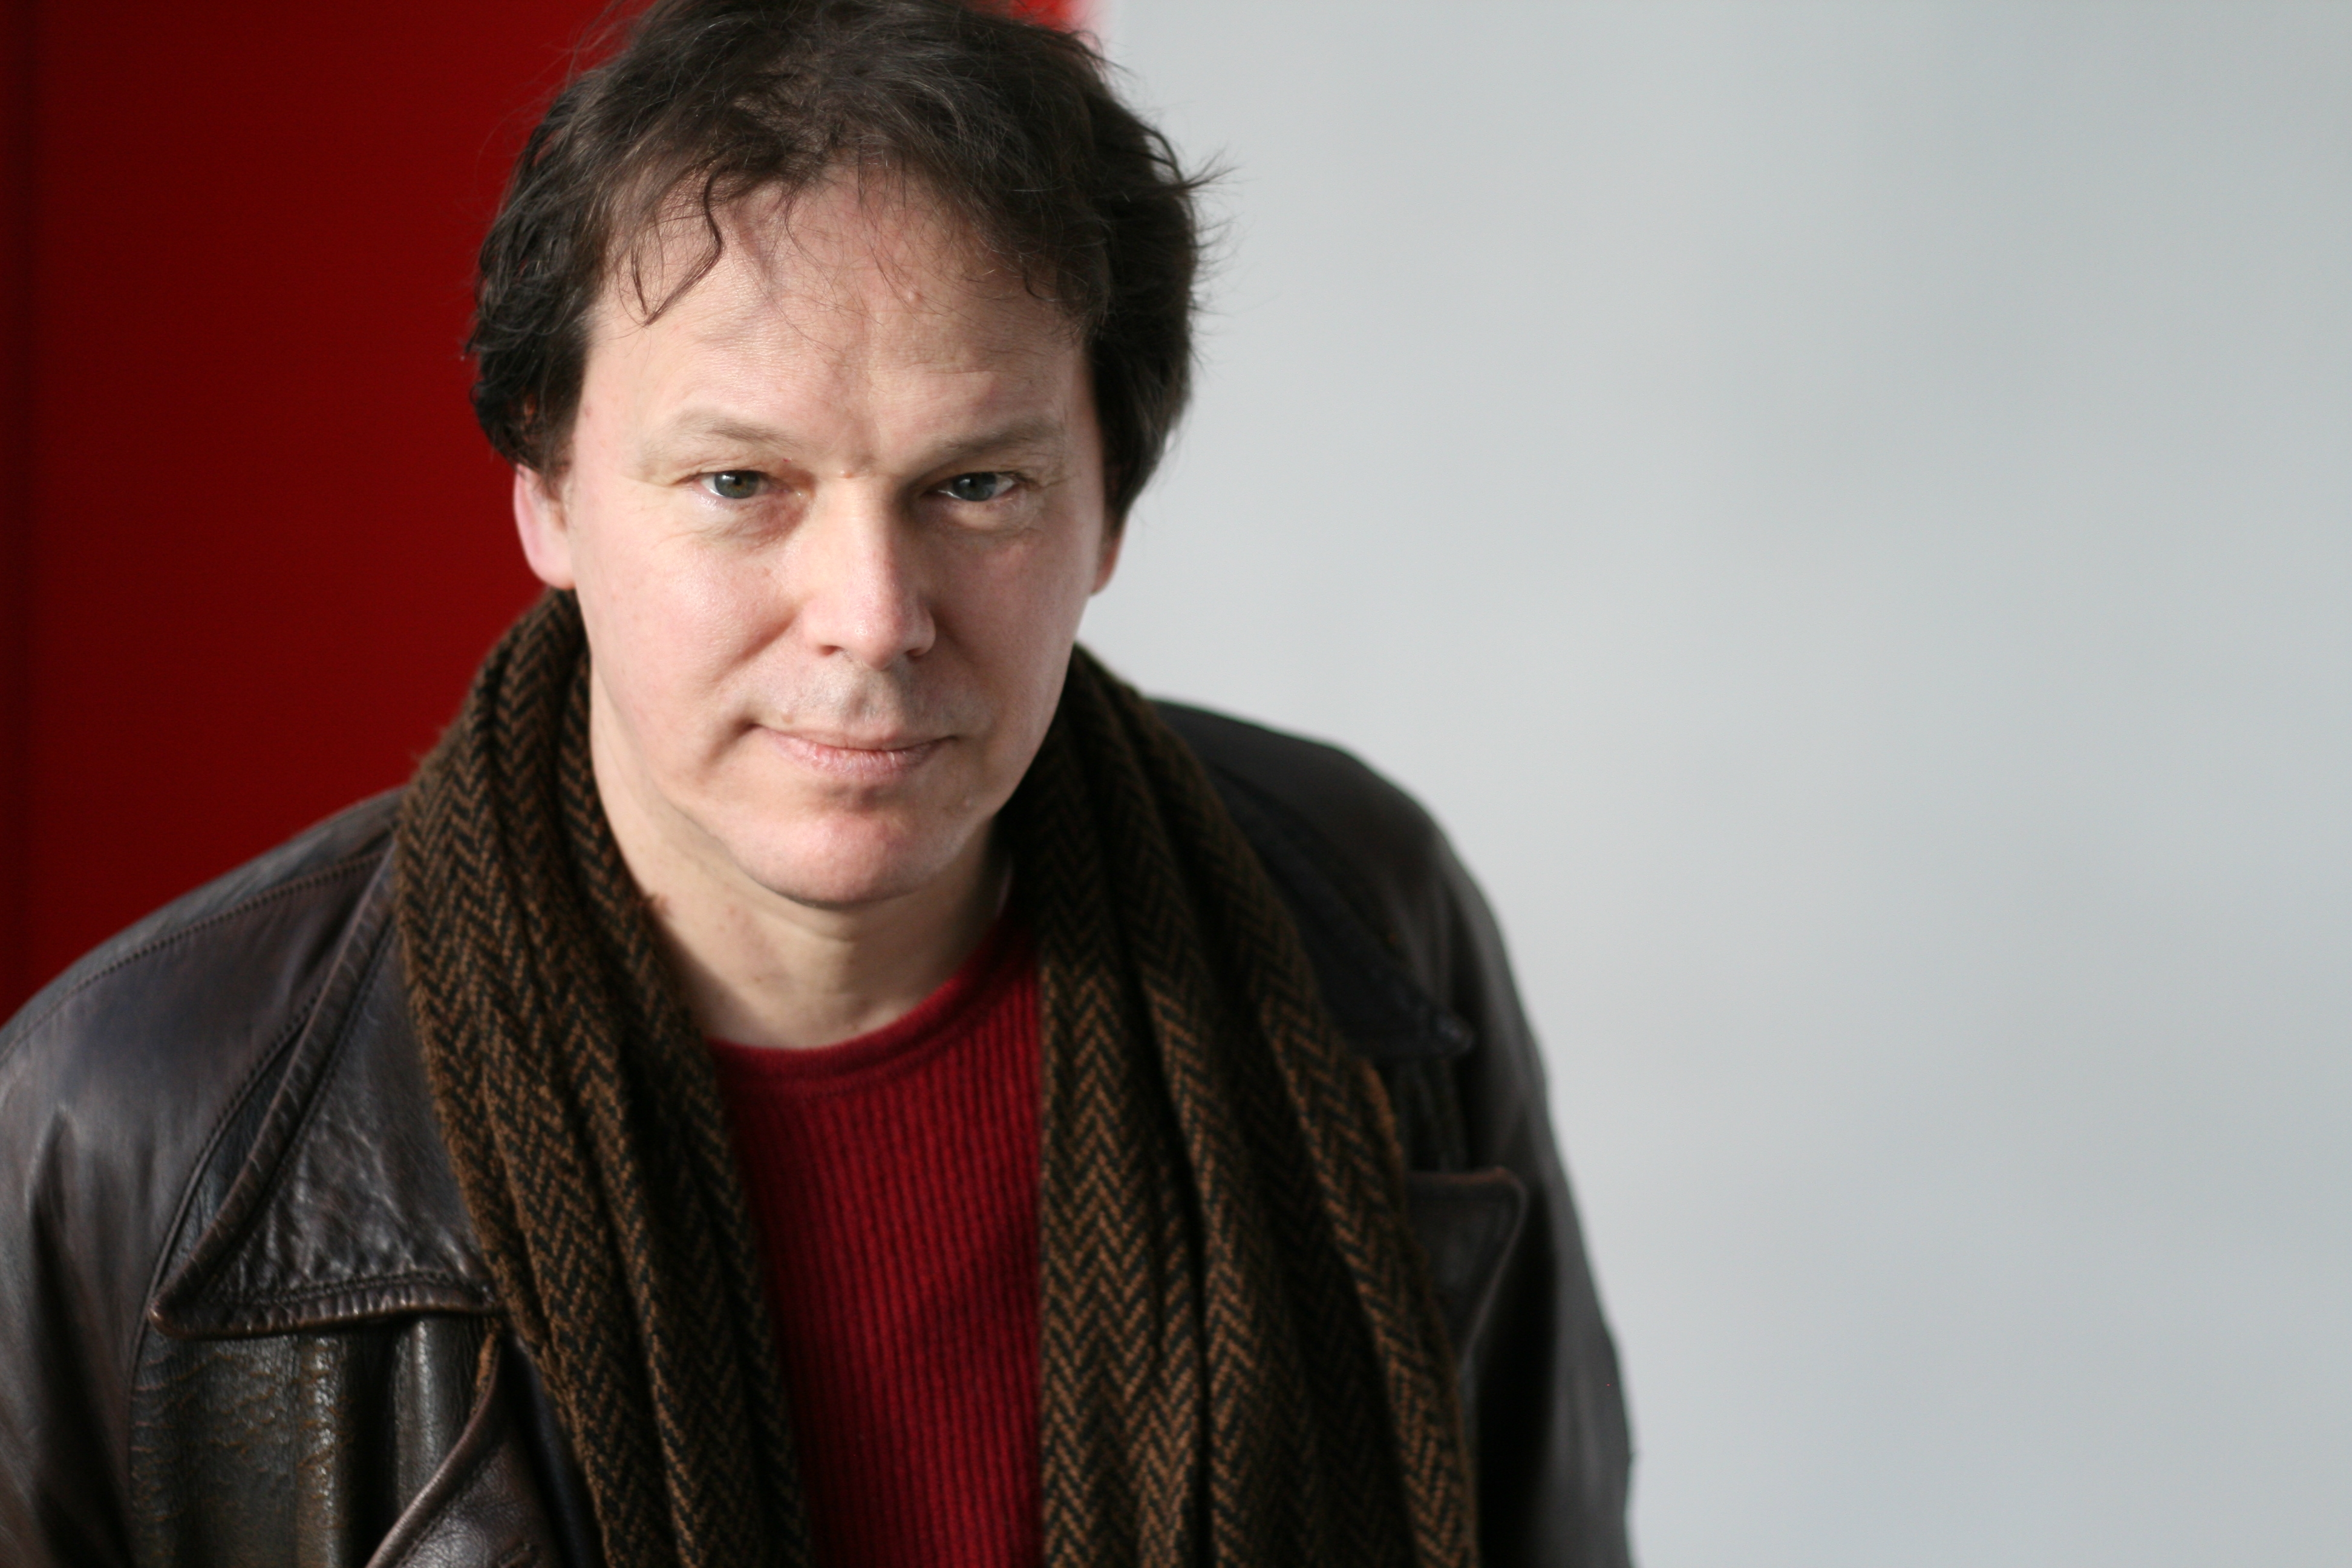 David Graeber, scholar, anarchist and intellectual leader of Occupy Wall  Street, dies at 59 - The Washington Post